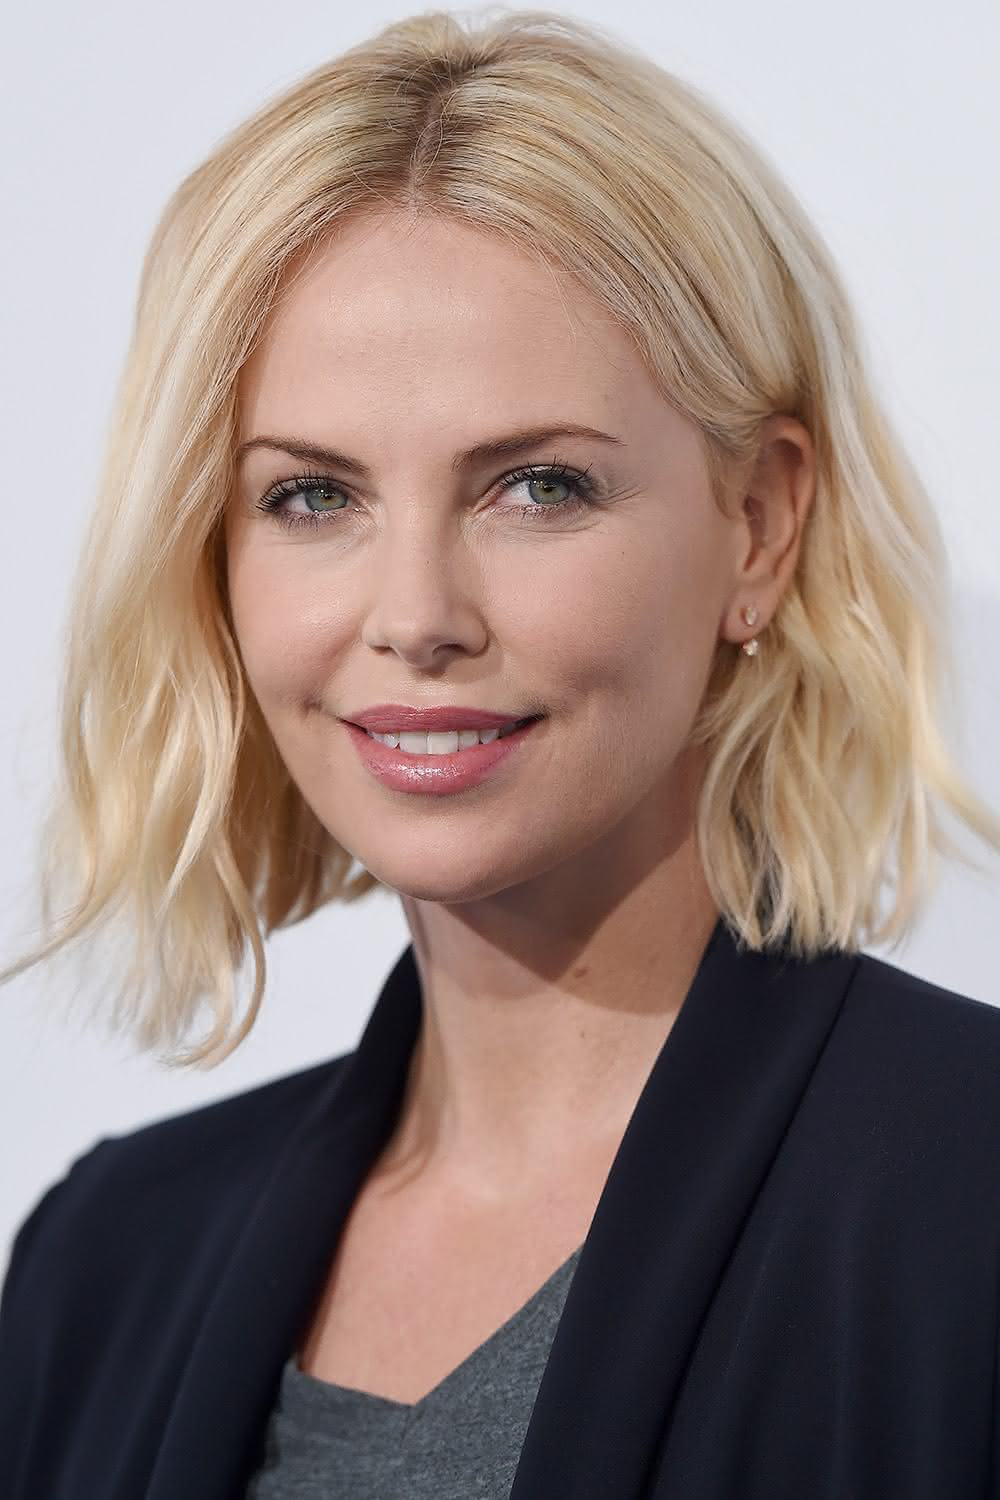 INGLEWOOD, CA - APRIL 07: Actress Charlize Theron arrives at WE Day California at The Forum on April 7, 2016 in Inglewood, California. (Photo by Axelle/Bauer-Griffin/FilmMagic)